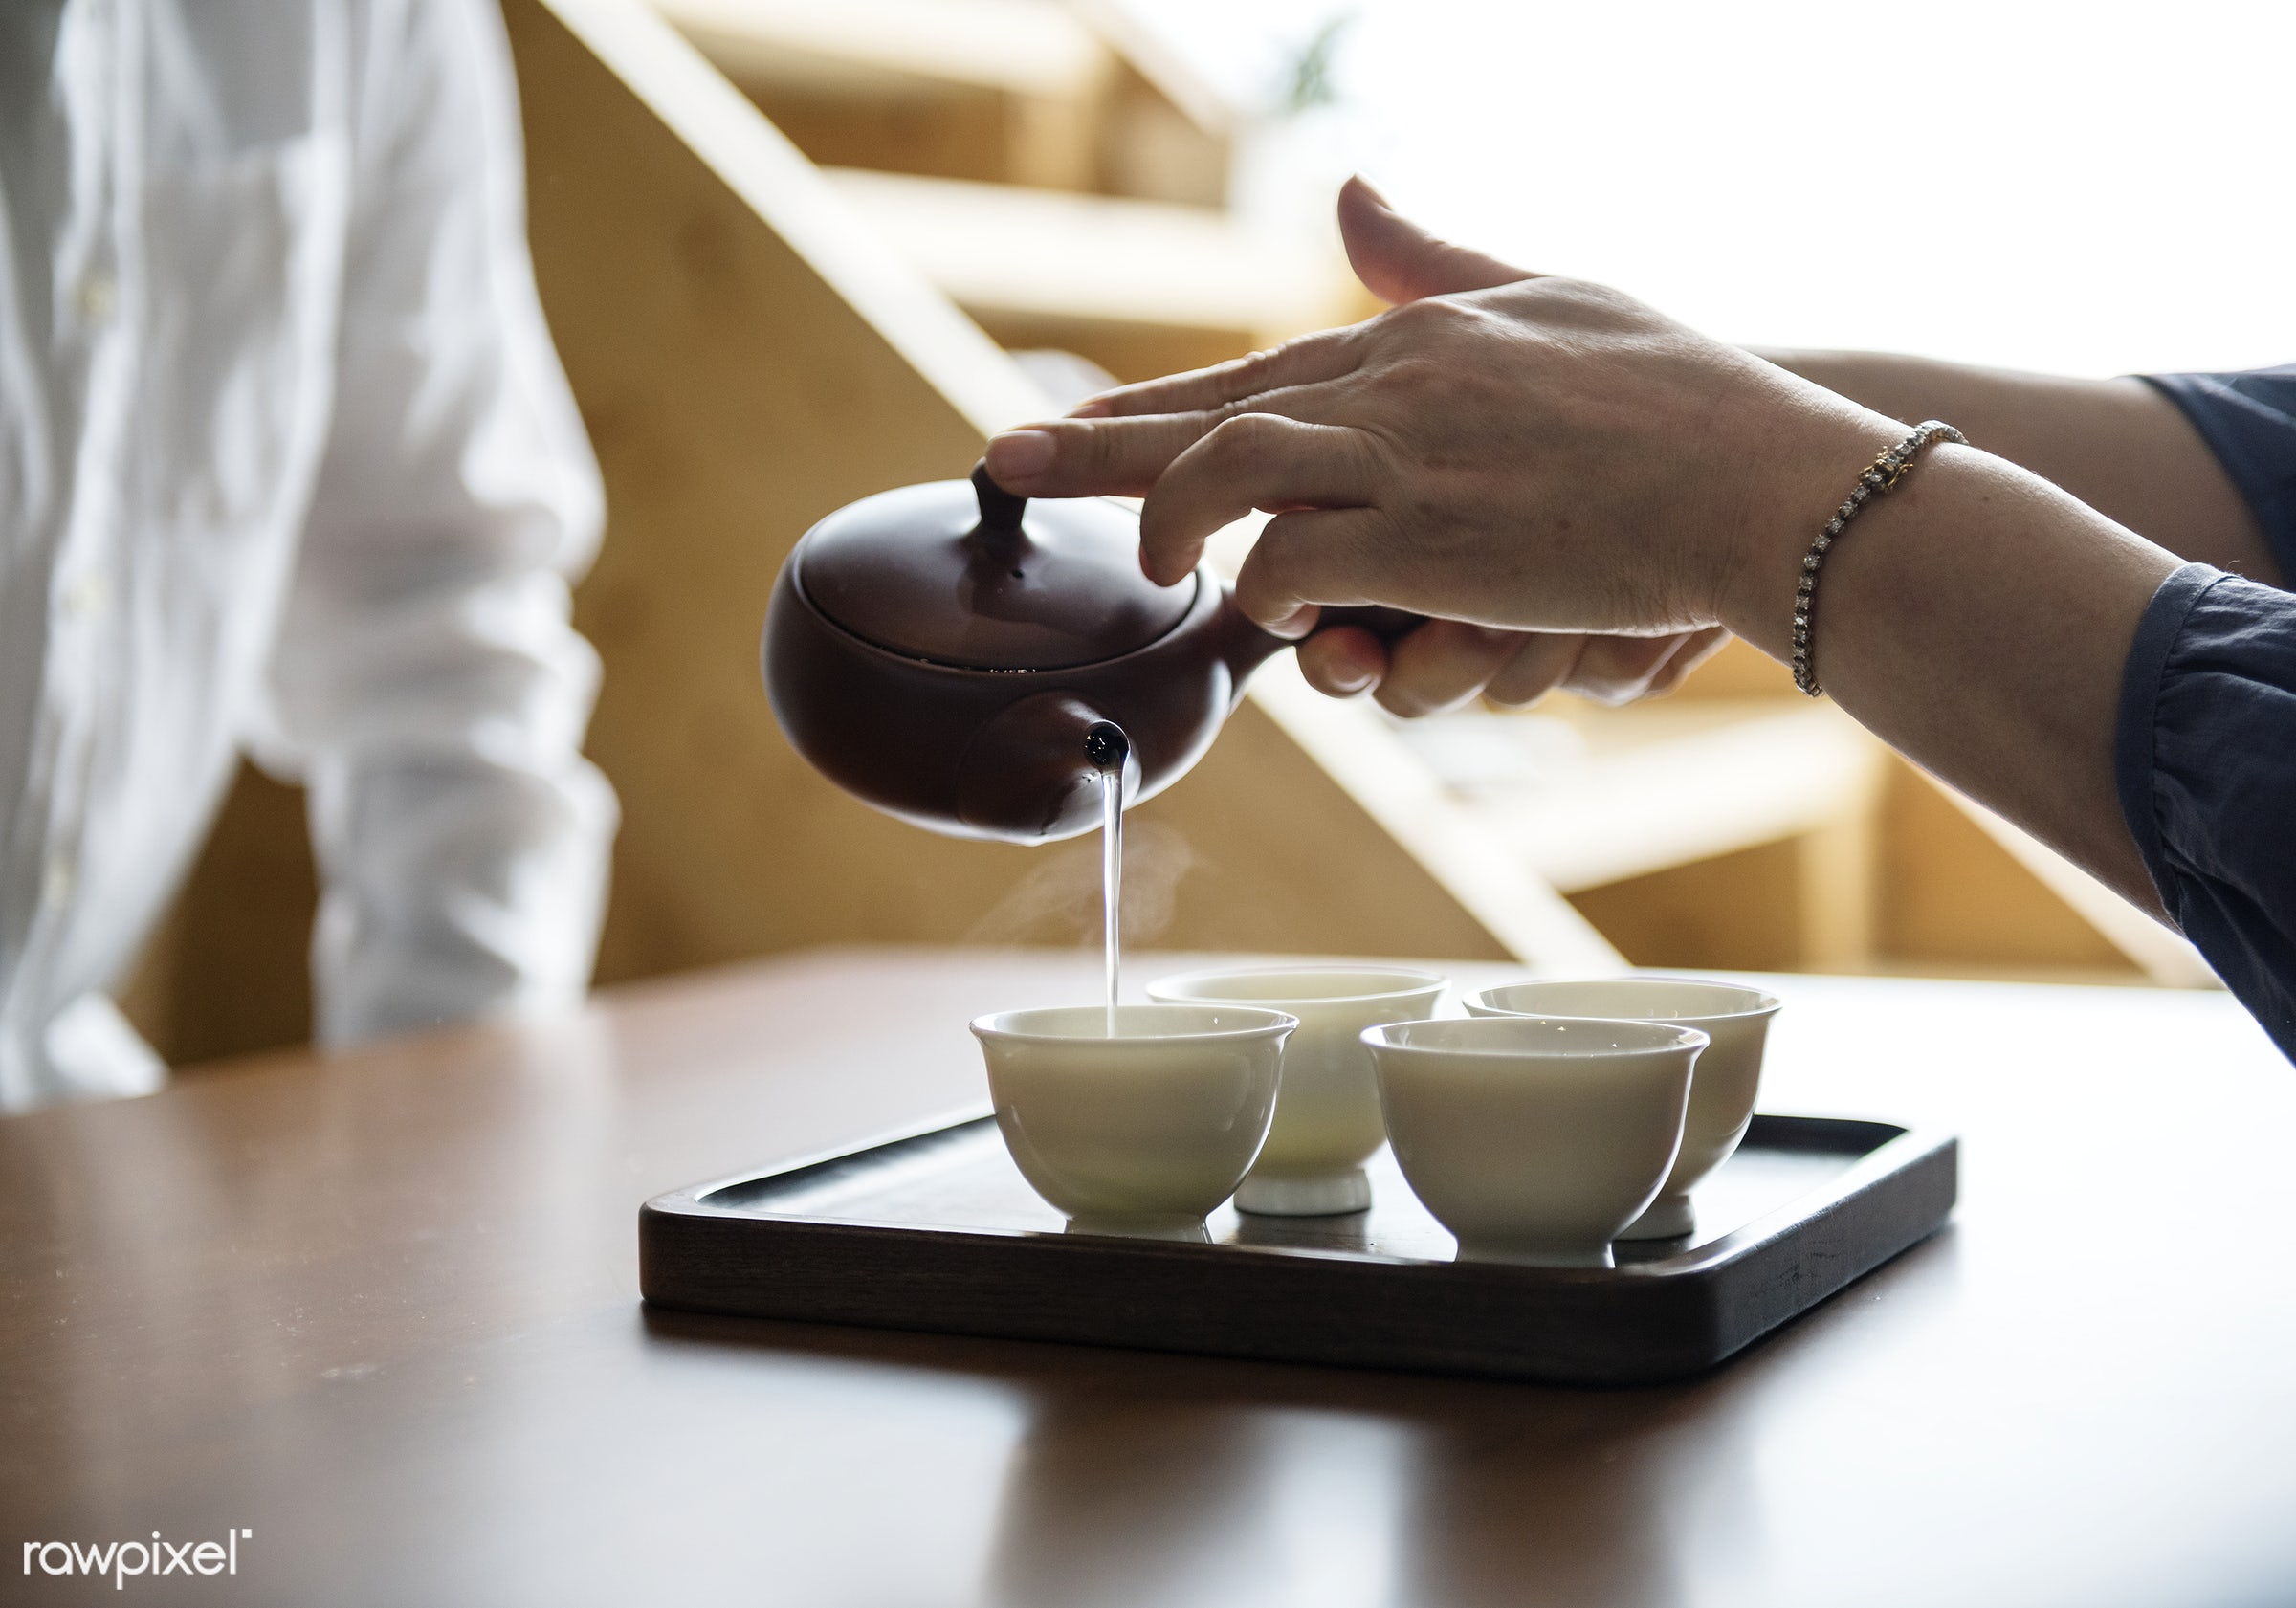 Pouring sake - japan, tea, asia, asian, ceremony, culture, drinking, family, formal, home, japanese, lifestyle, oriental,...